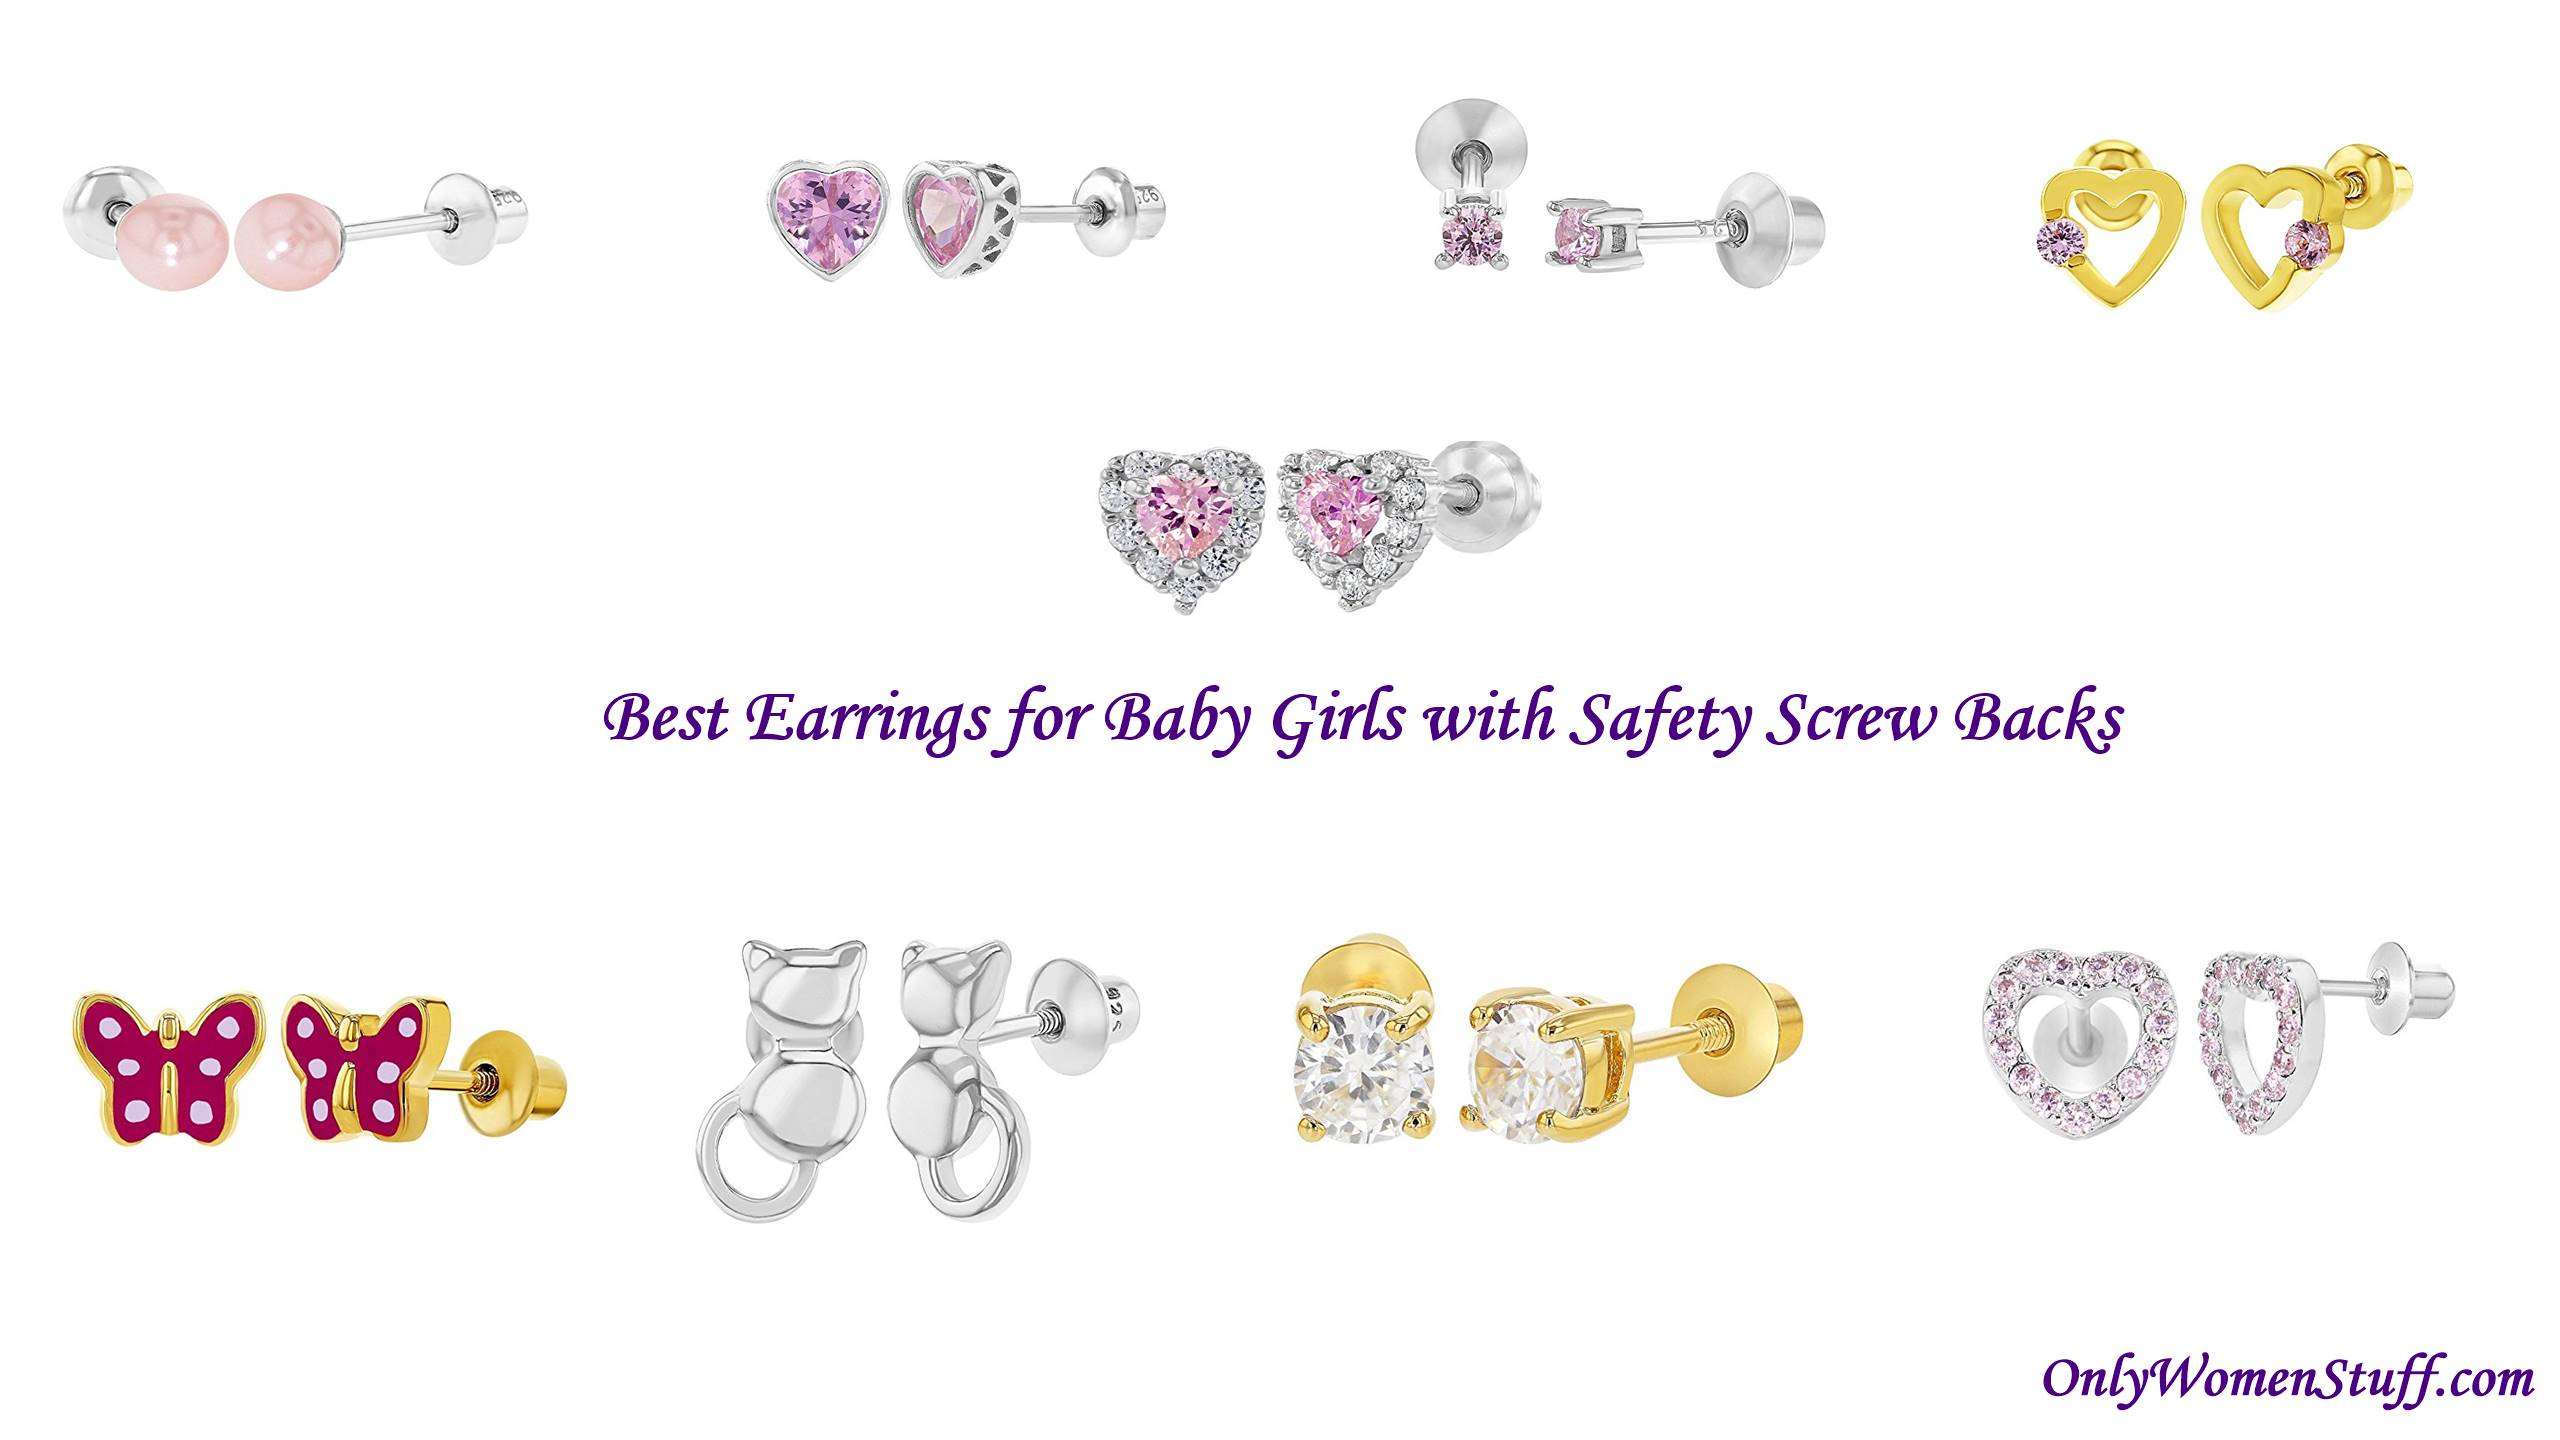 10 Best Earrings for Baby Girls With Safety Screw Back